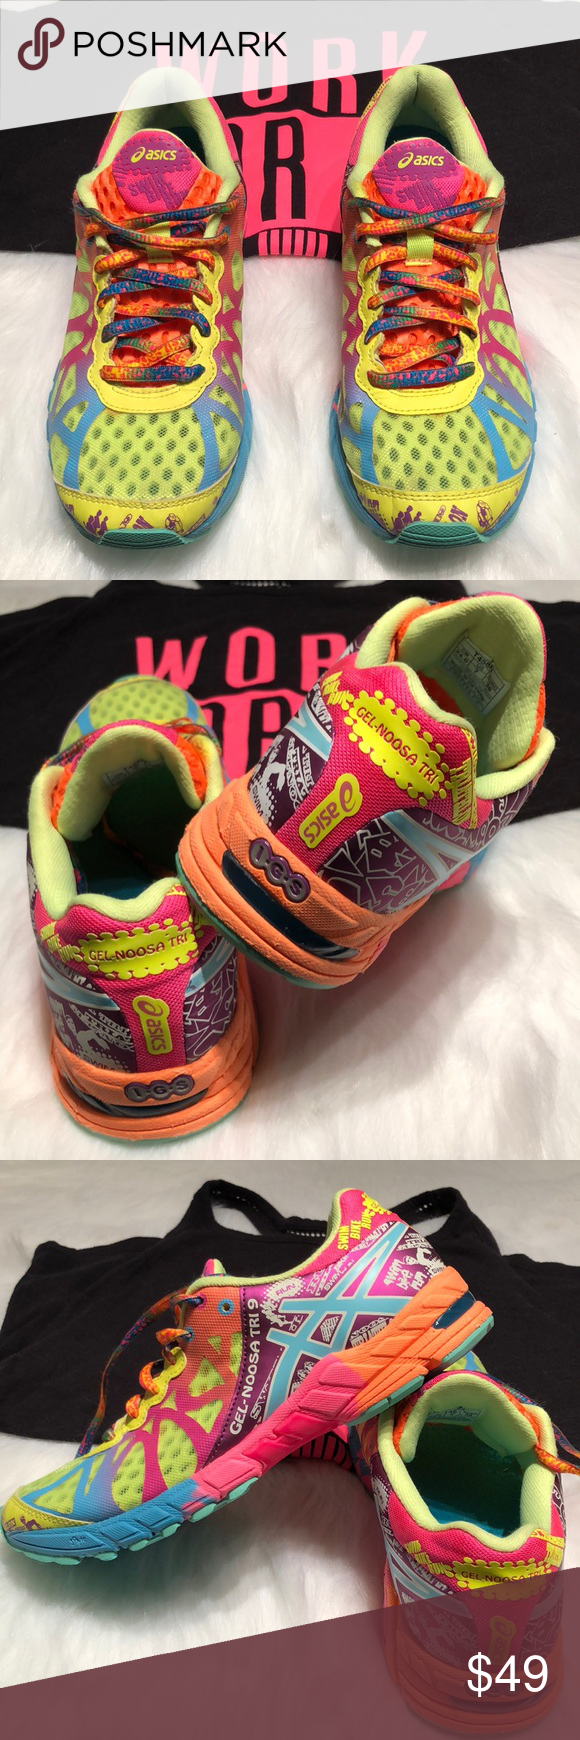 check out 63858 38d0c ASICS Gel Noosa Tri 9- Wm 7 EUC! Only worn in the gym! 😊 These are such  FUN tennis shoes and comfy! Theme is swim, bike, run on these Gel Noosa Tri  ...